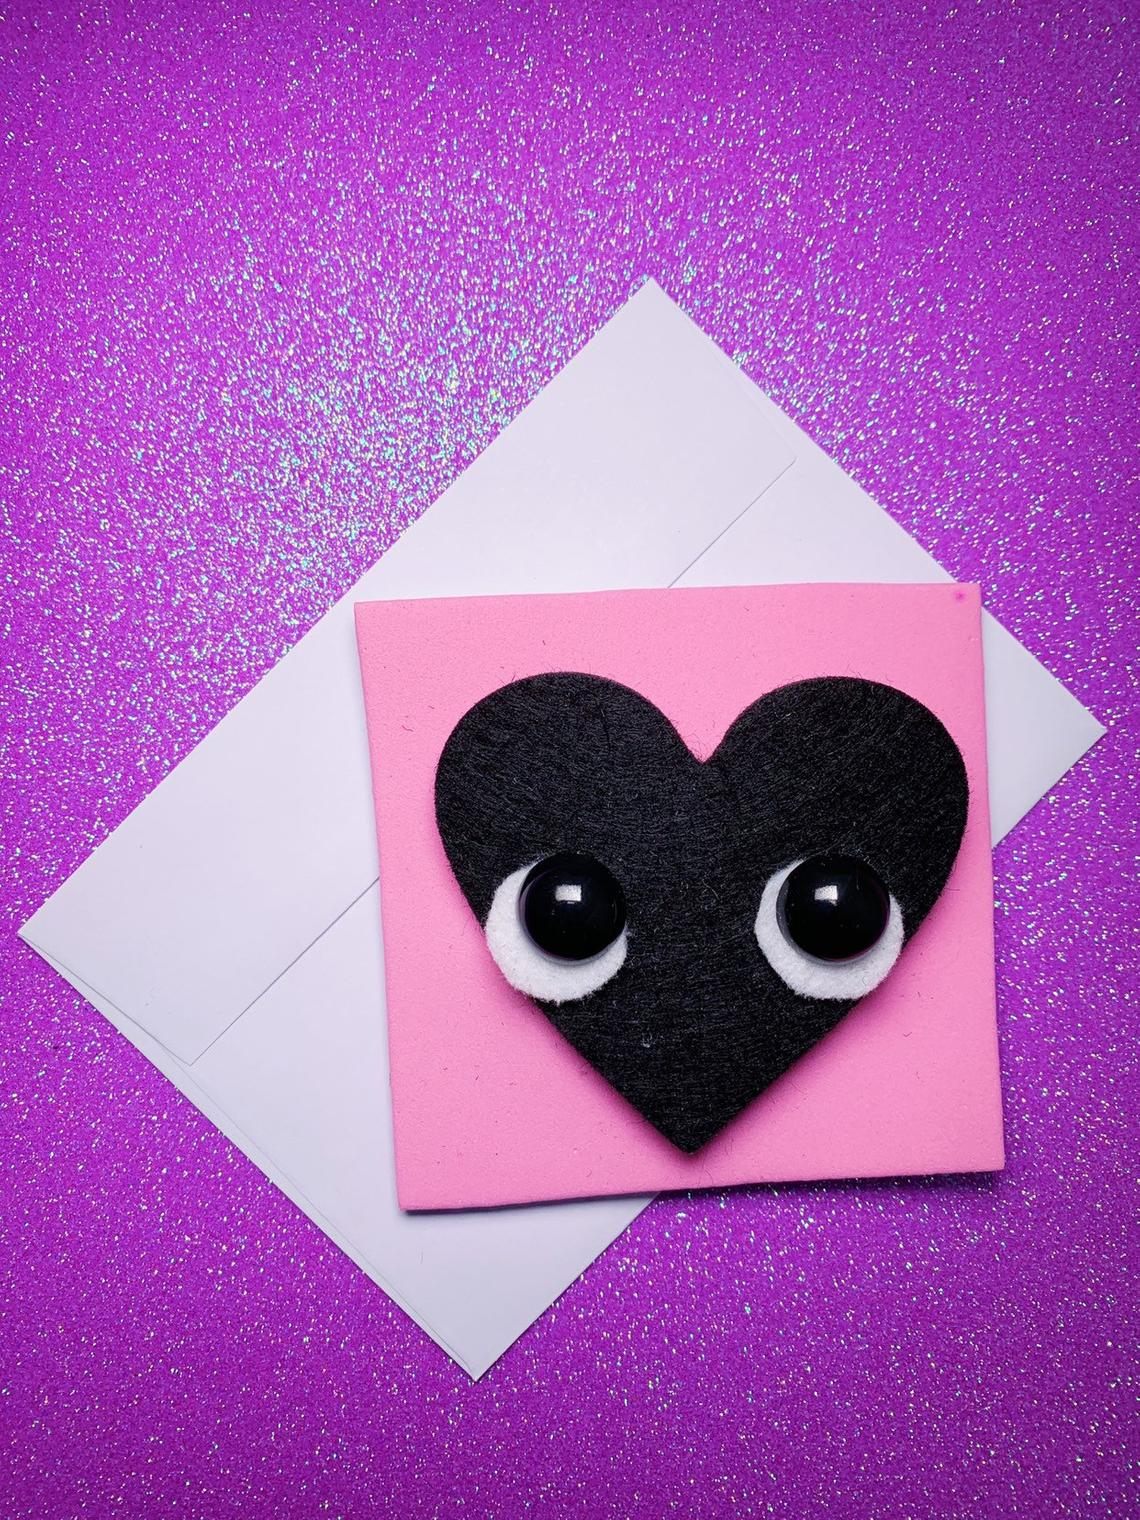 Creepy Cute Cards - Handmade by yours truly.